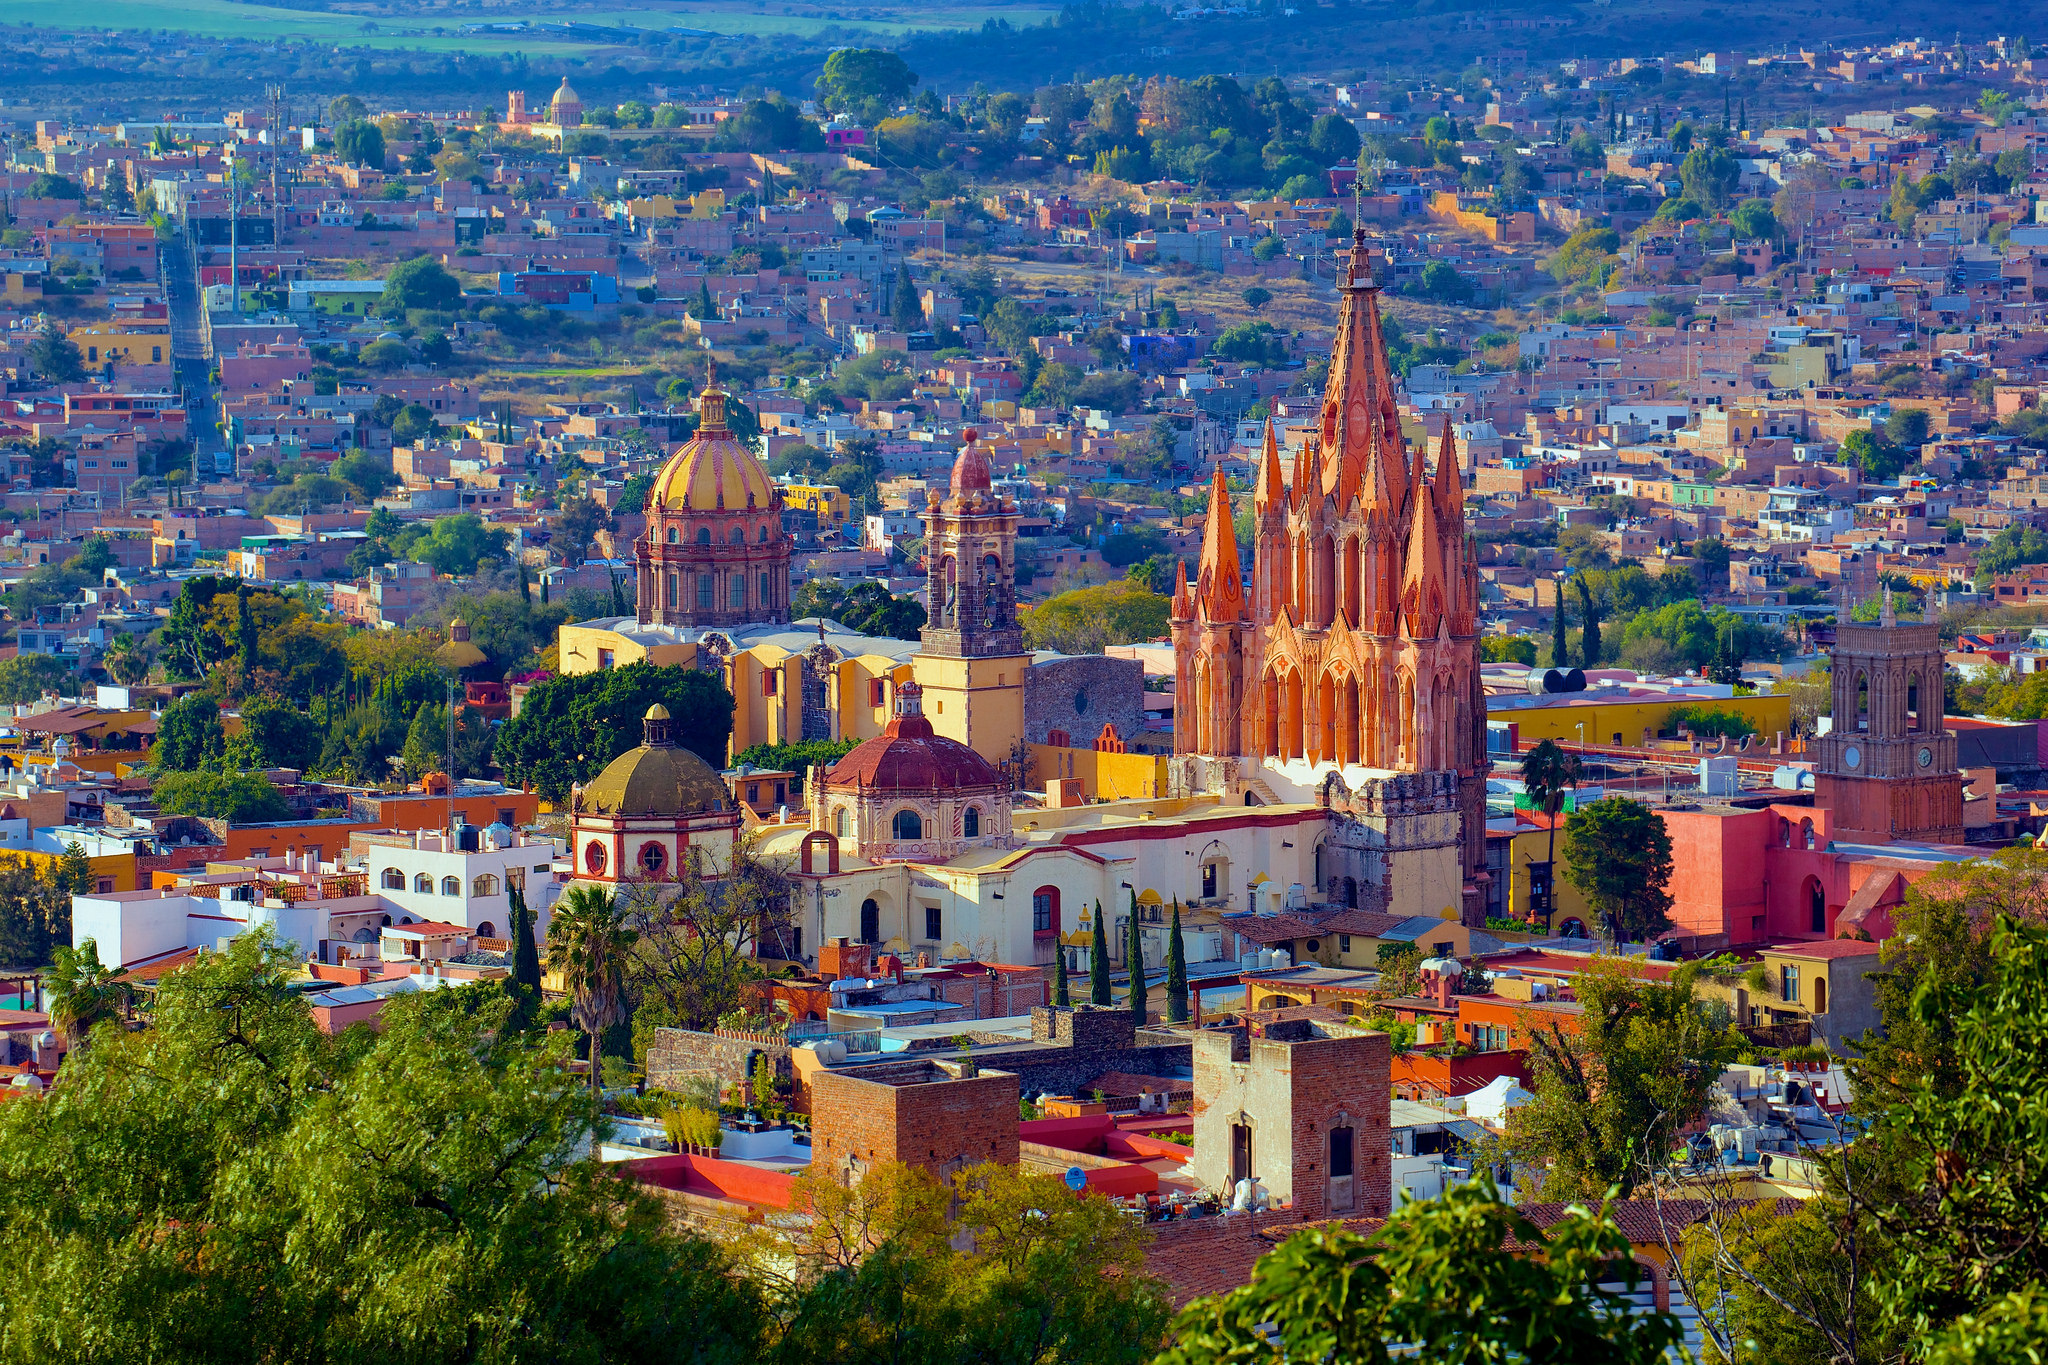 What better place to enjoy some wine than in beautiful San Miguel de Allende? | © Jiuguang Wang/Flickr